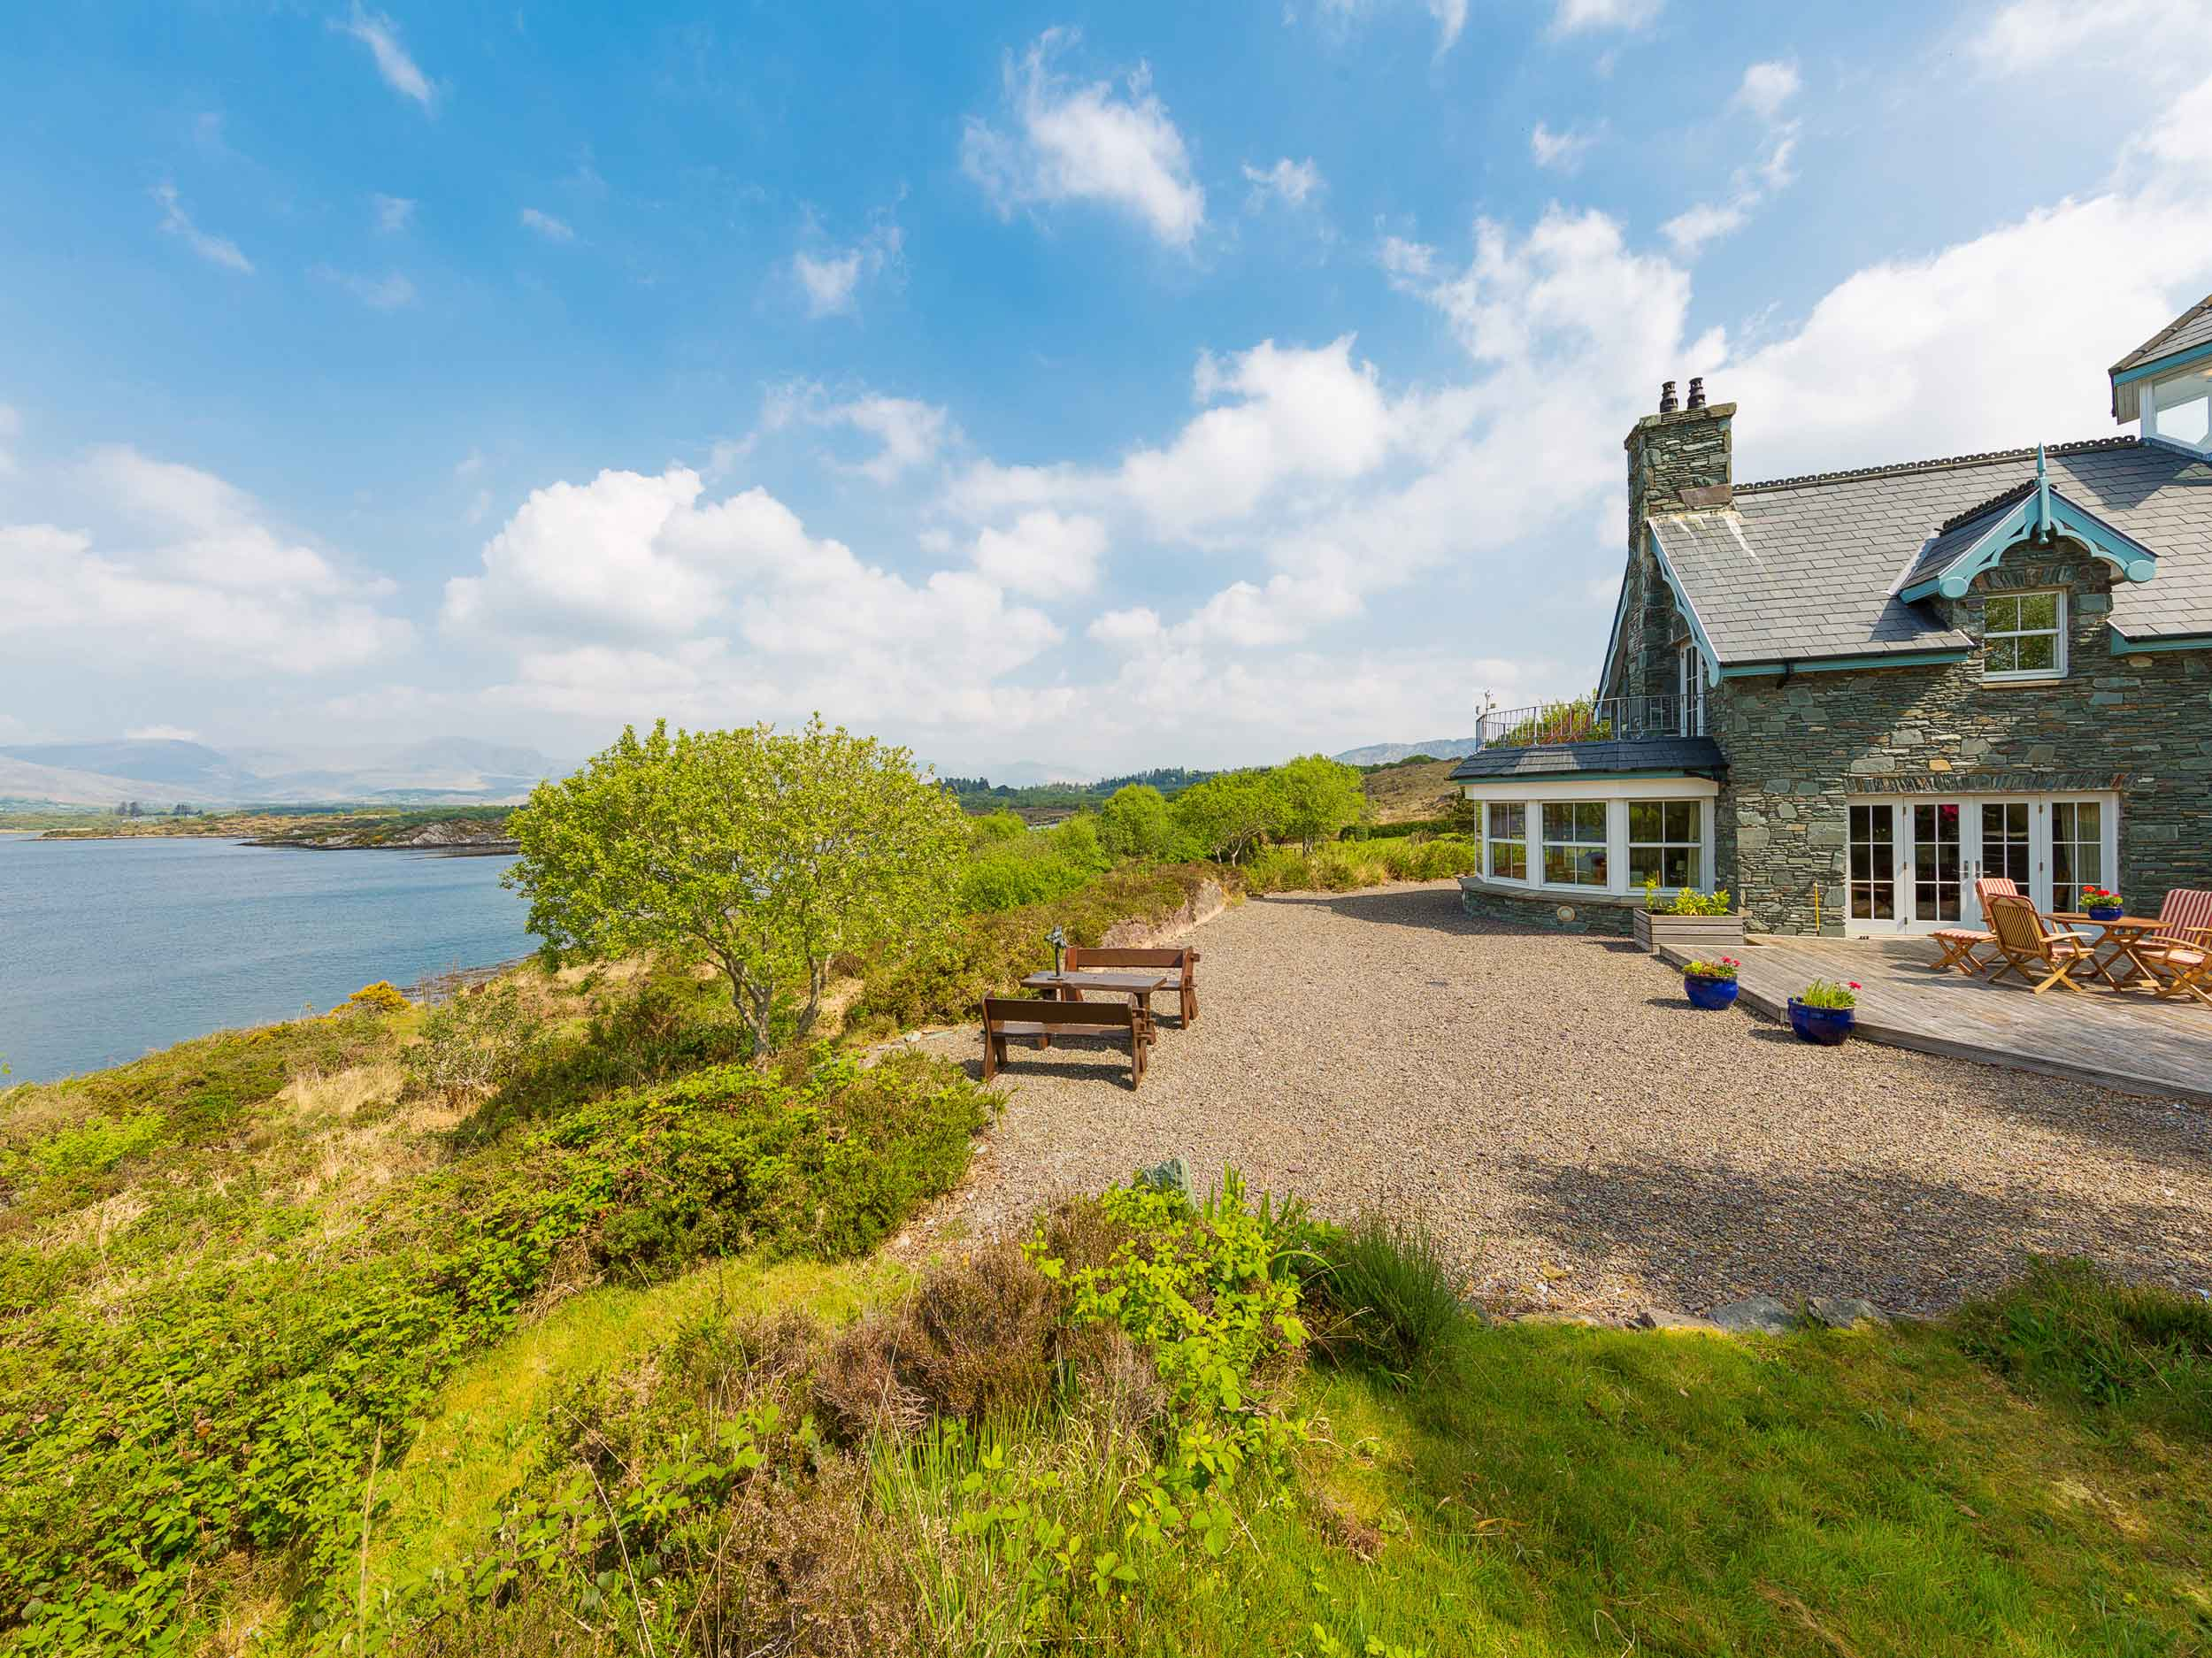 Drimna Lodge, an estate overlooking the Macgillycuddy's Reeks Mountains in County Kerry is a jewel on Ireland's Wild Atlantic Way.